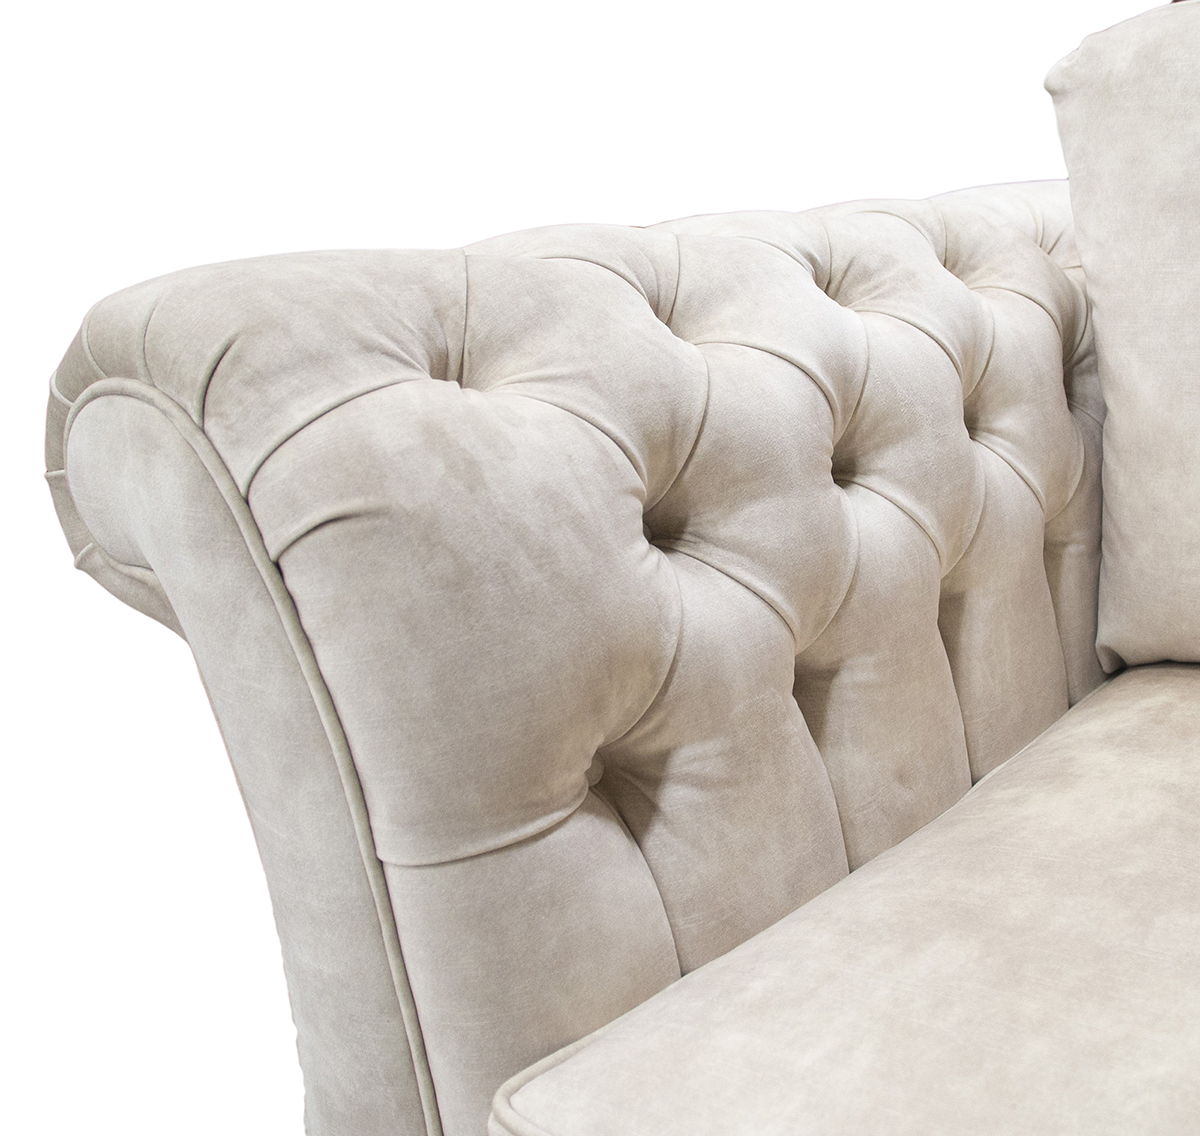 Letrec Small Sofa With Deep Button Arms in Lovely Almond Gold Collection Fabric